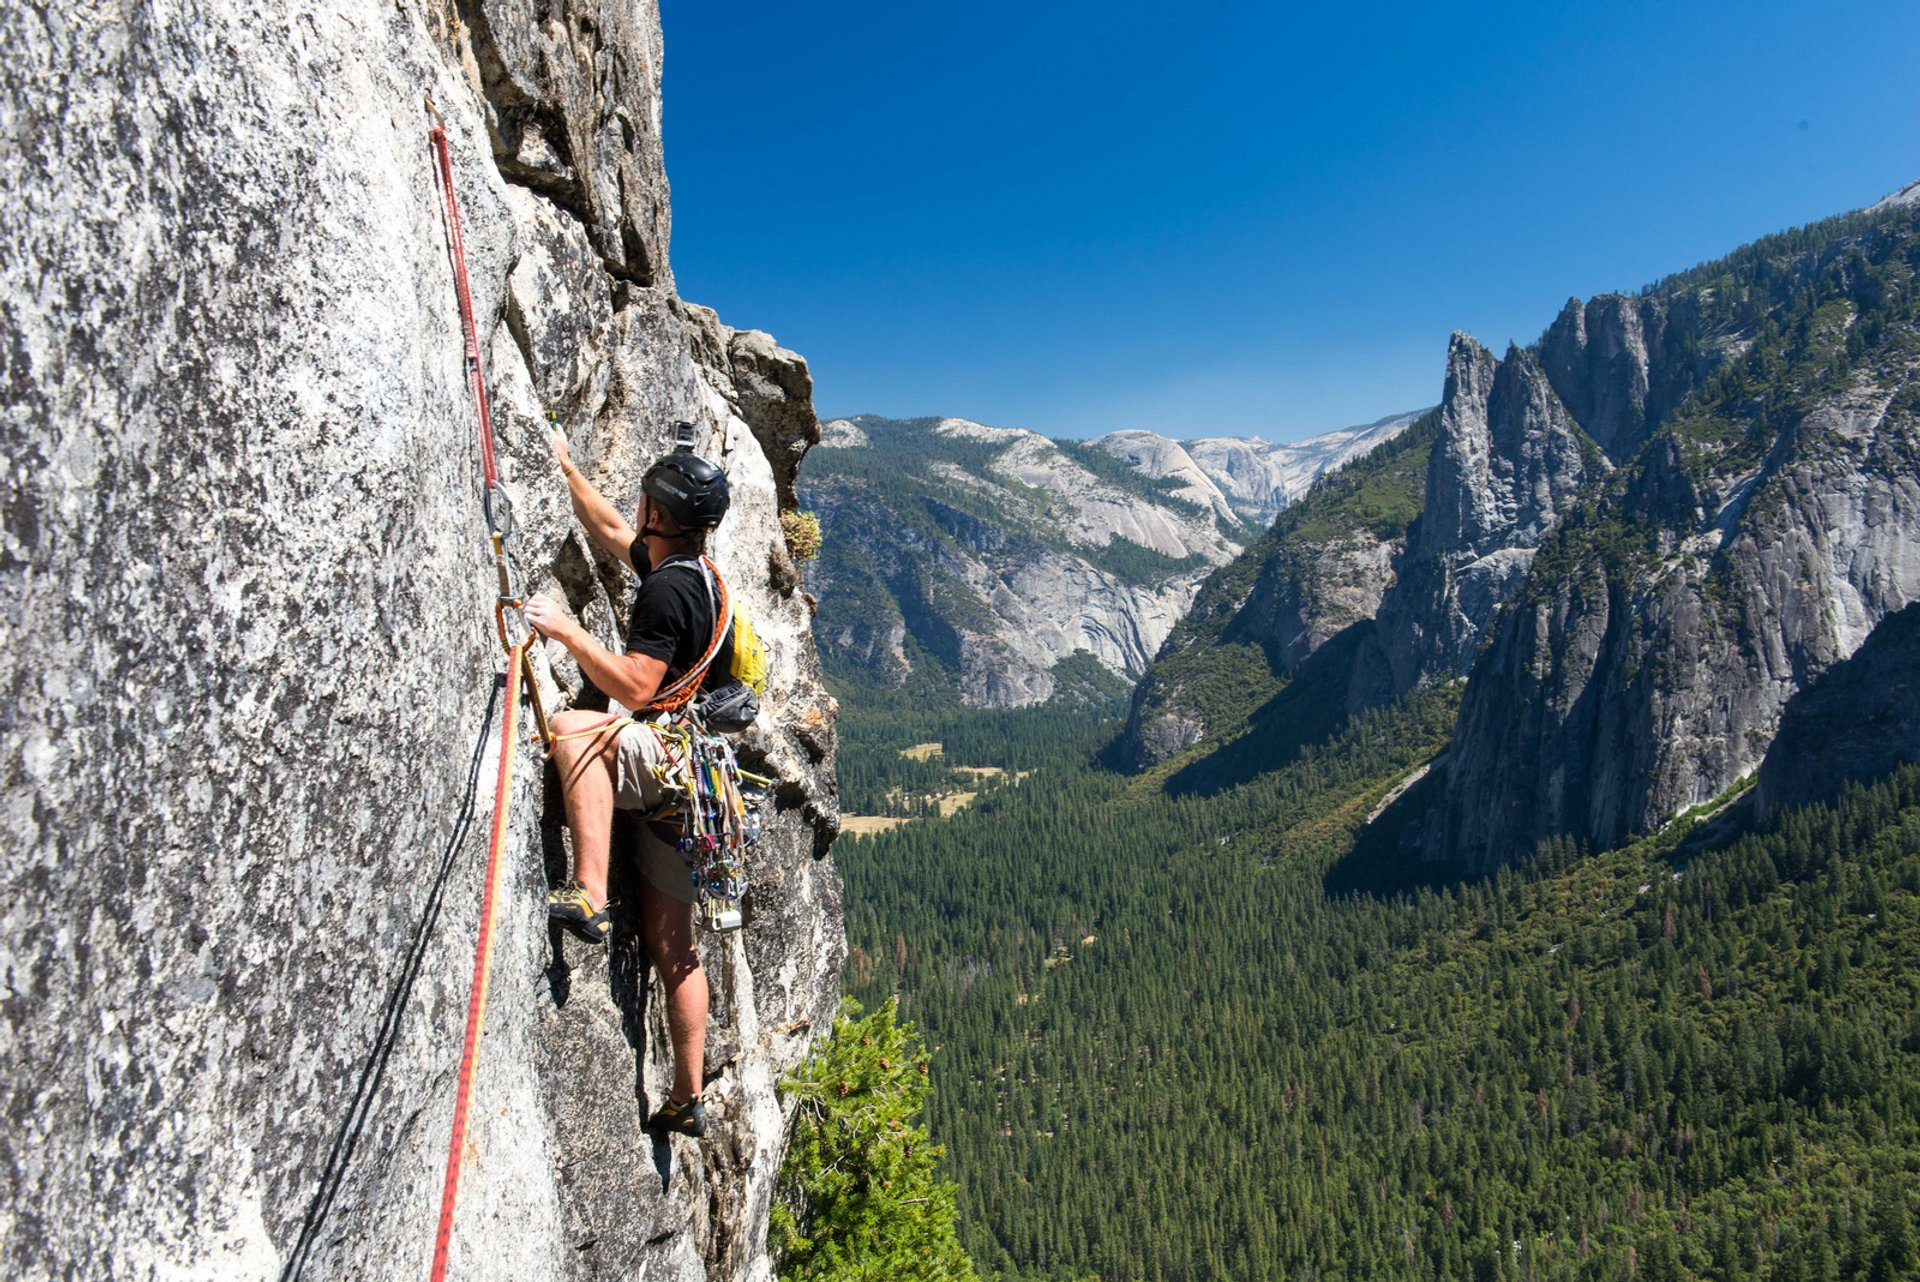 Rock Climbing in Yosemite 2019 - Best Time